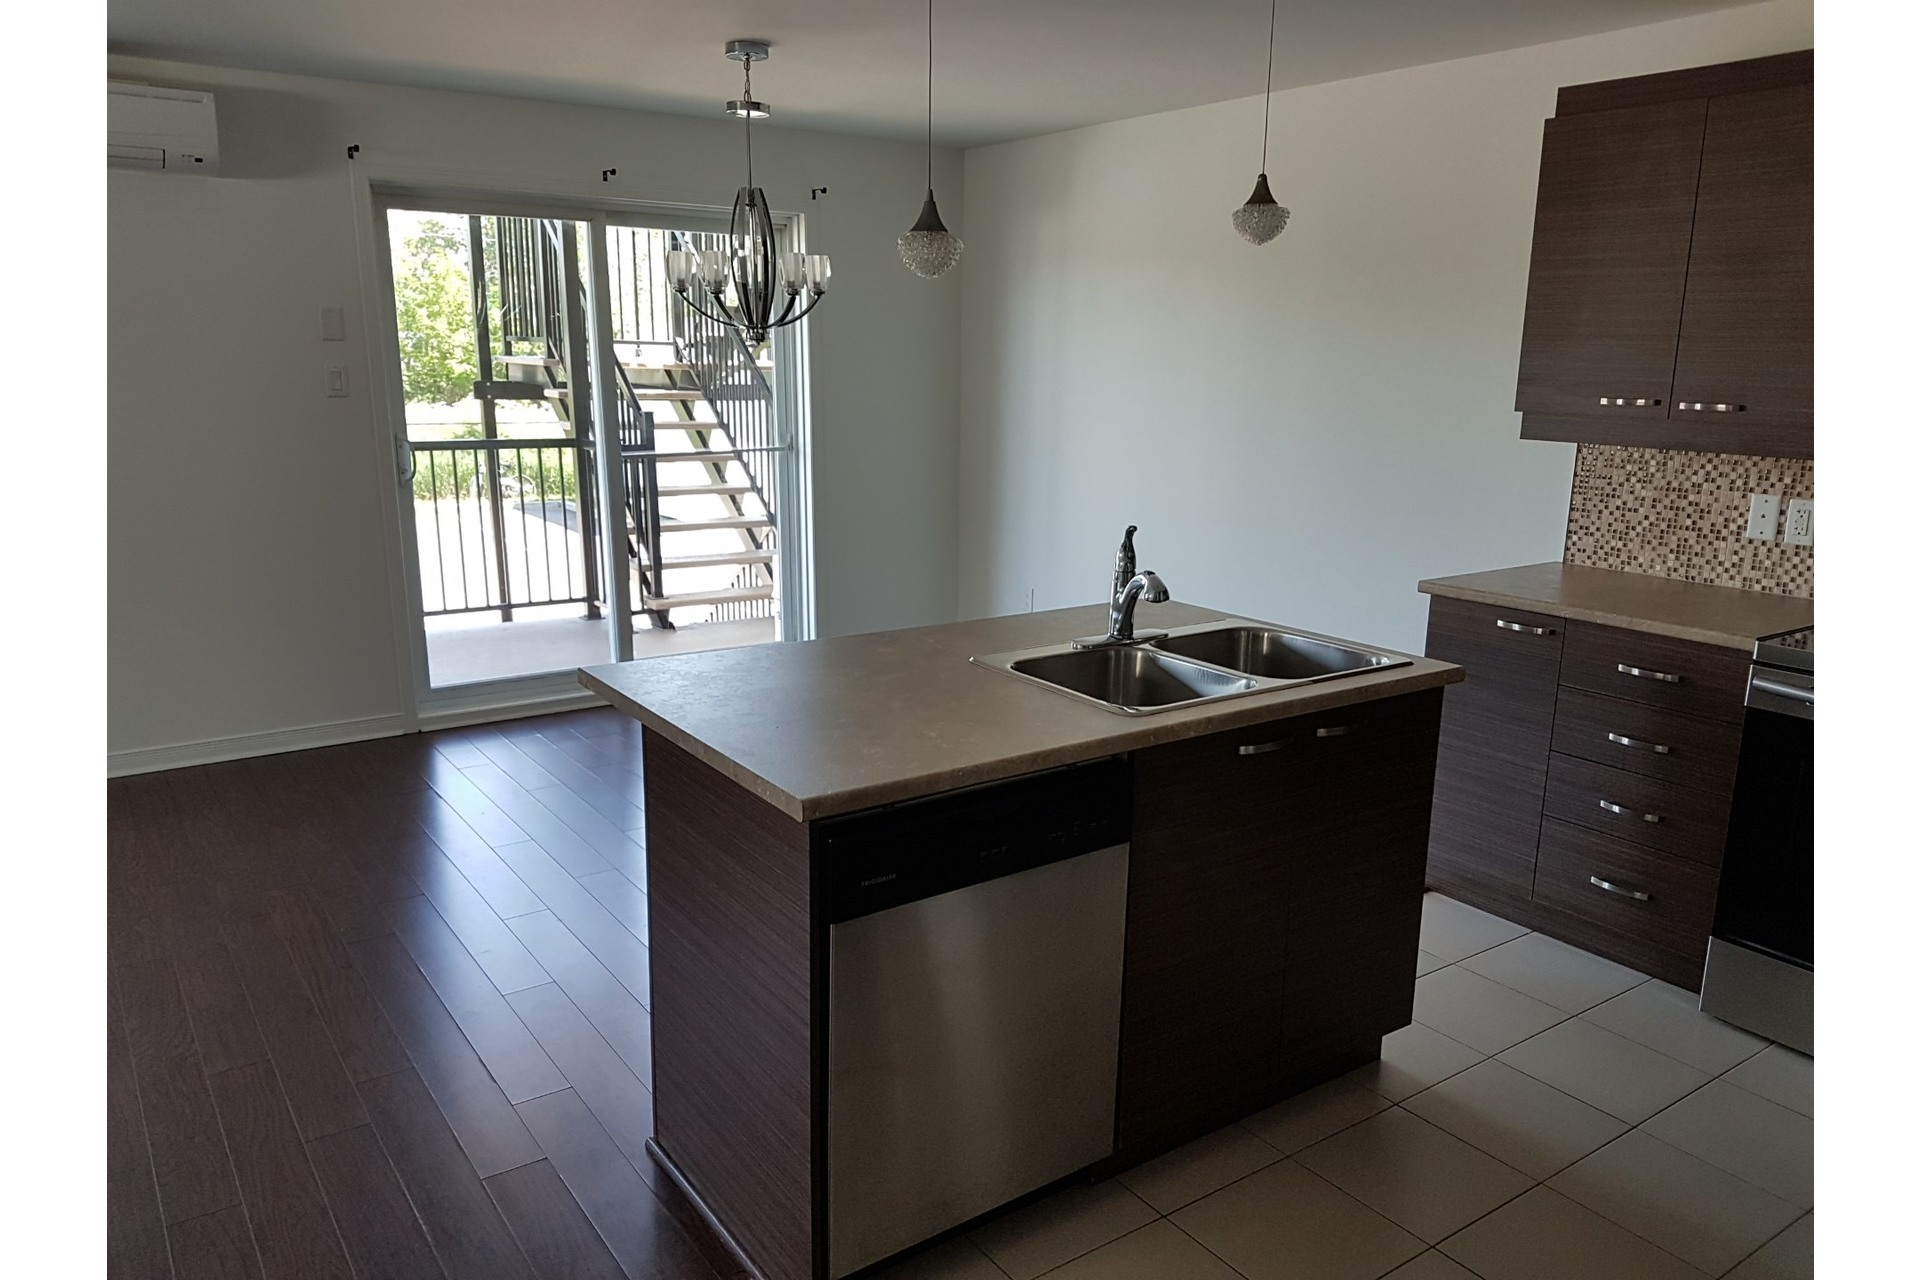 image 4 - Apartment For sale Vaudreuil-Dorion - 6 rooms